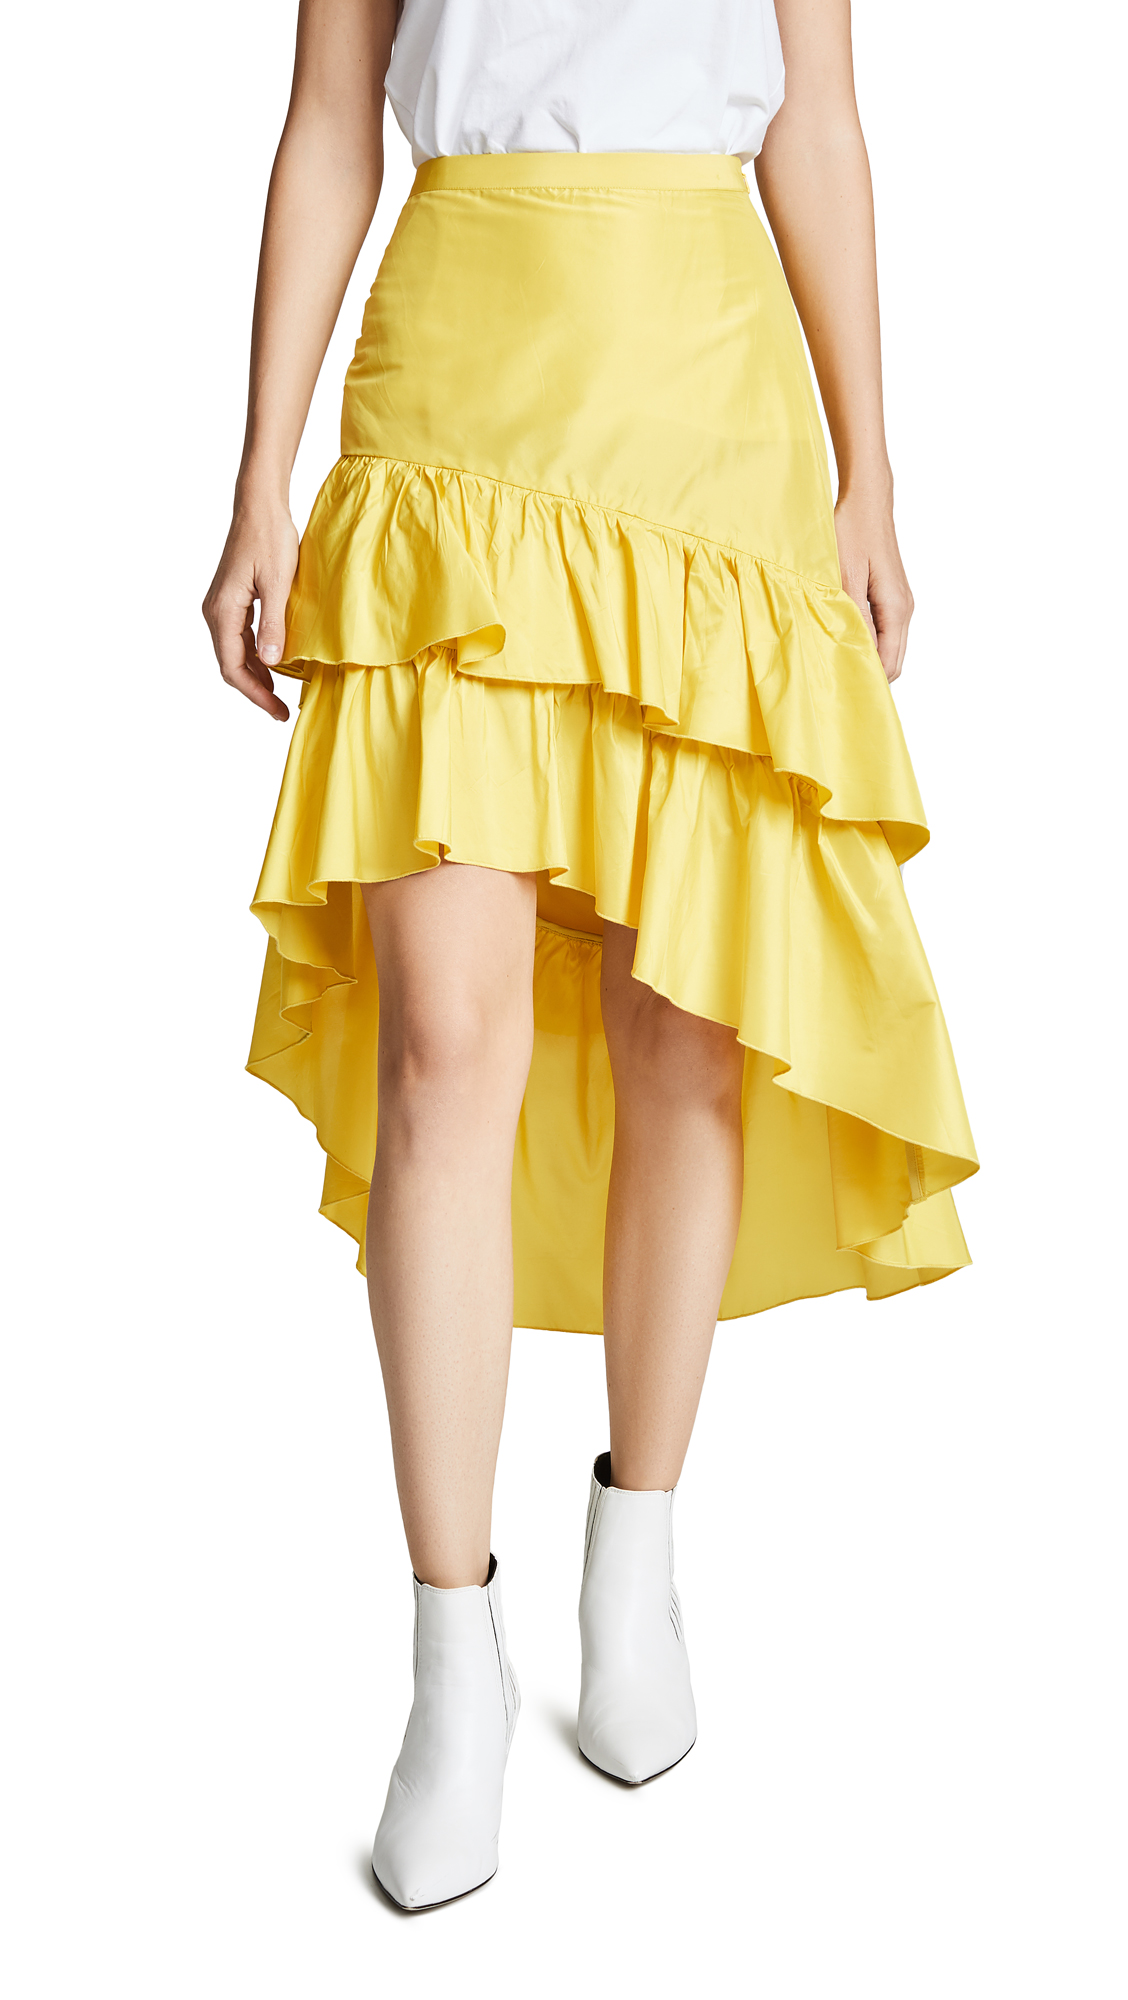 Cynthia Rowley High Low Tiered Ruffle Skirt - Limoncello